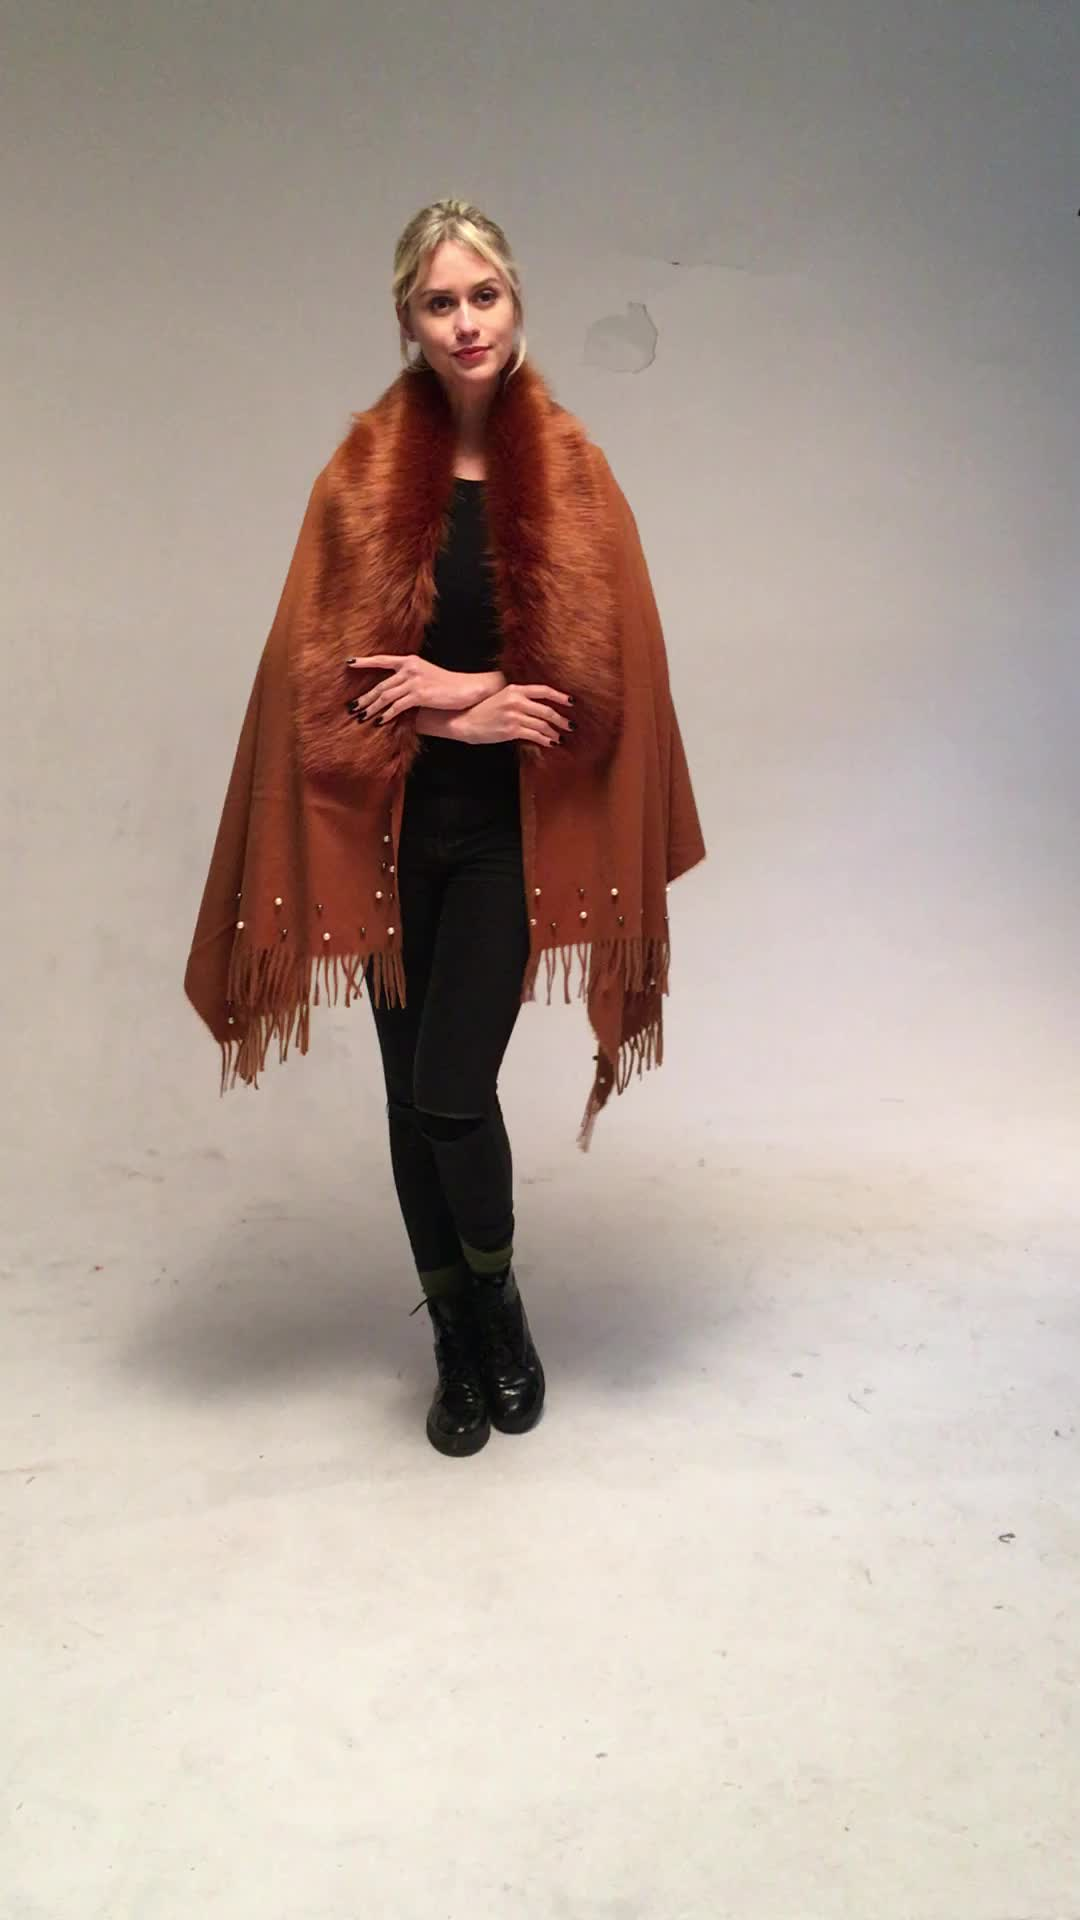 autumn and winter wholesale new designs tassel cloak shawl cashmere wrap wool poncho cape scarf with fur collar